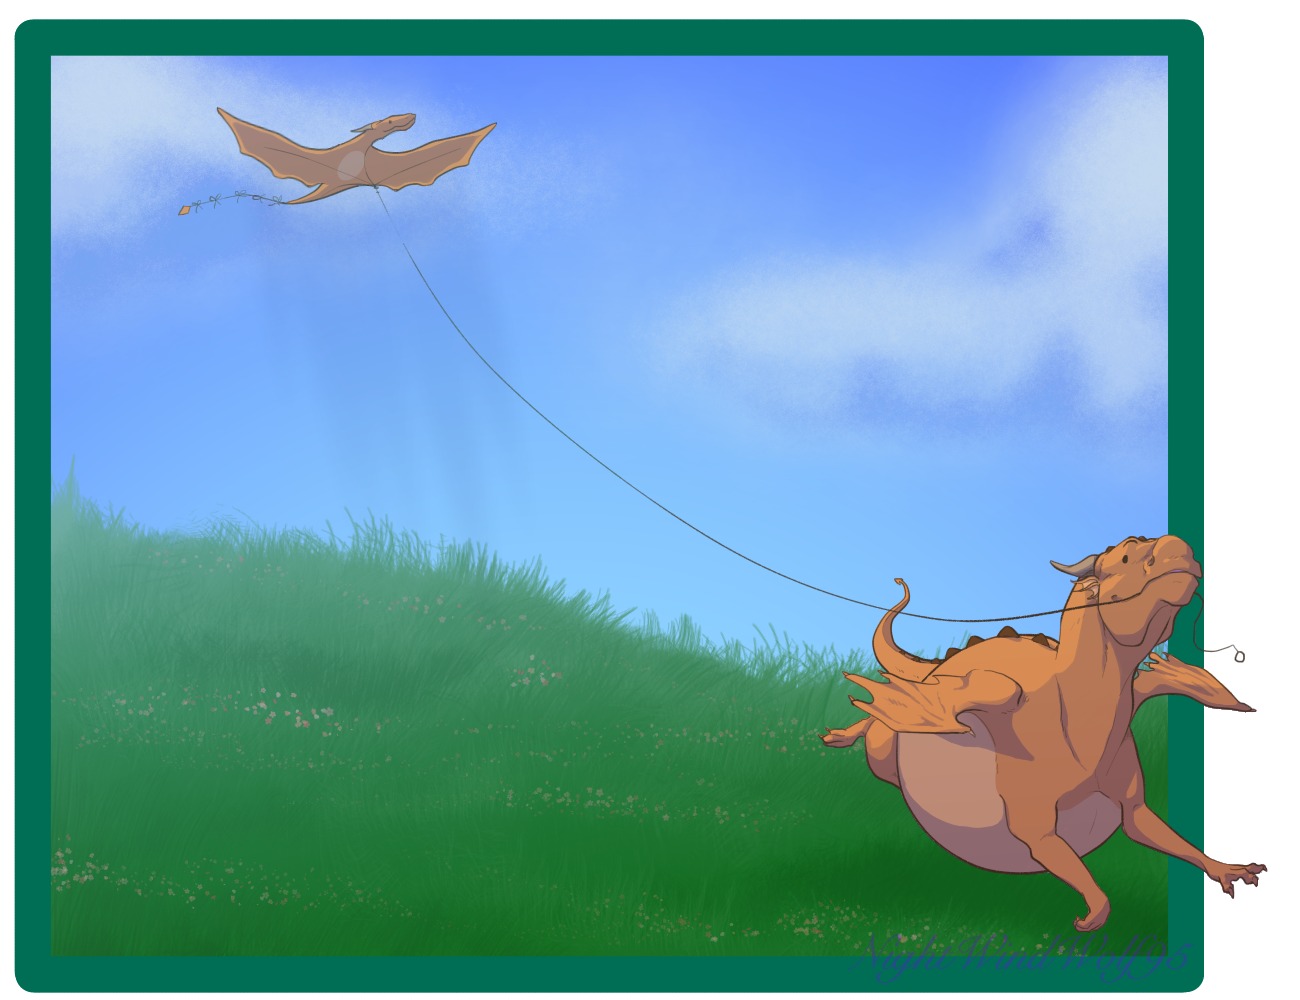 Derp Friday: Kite Flying by nightwindwolf95